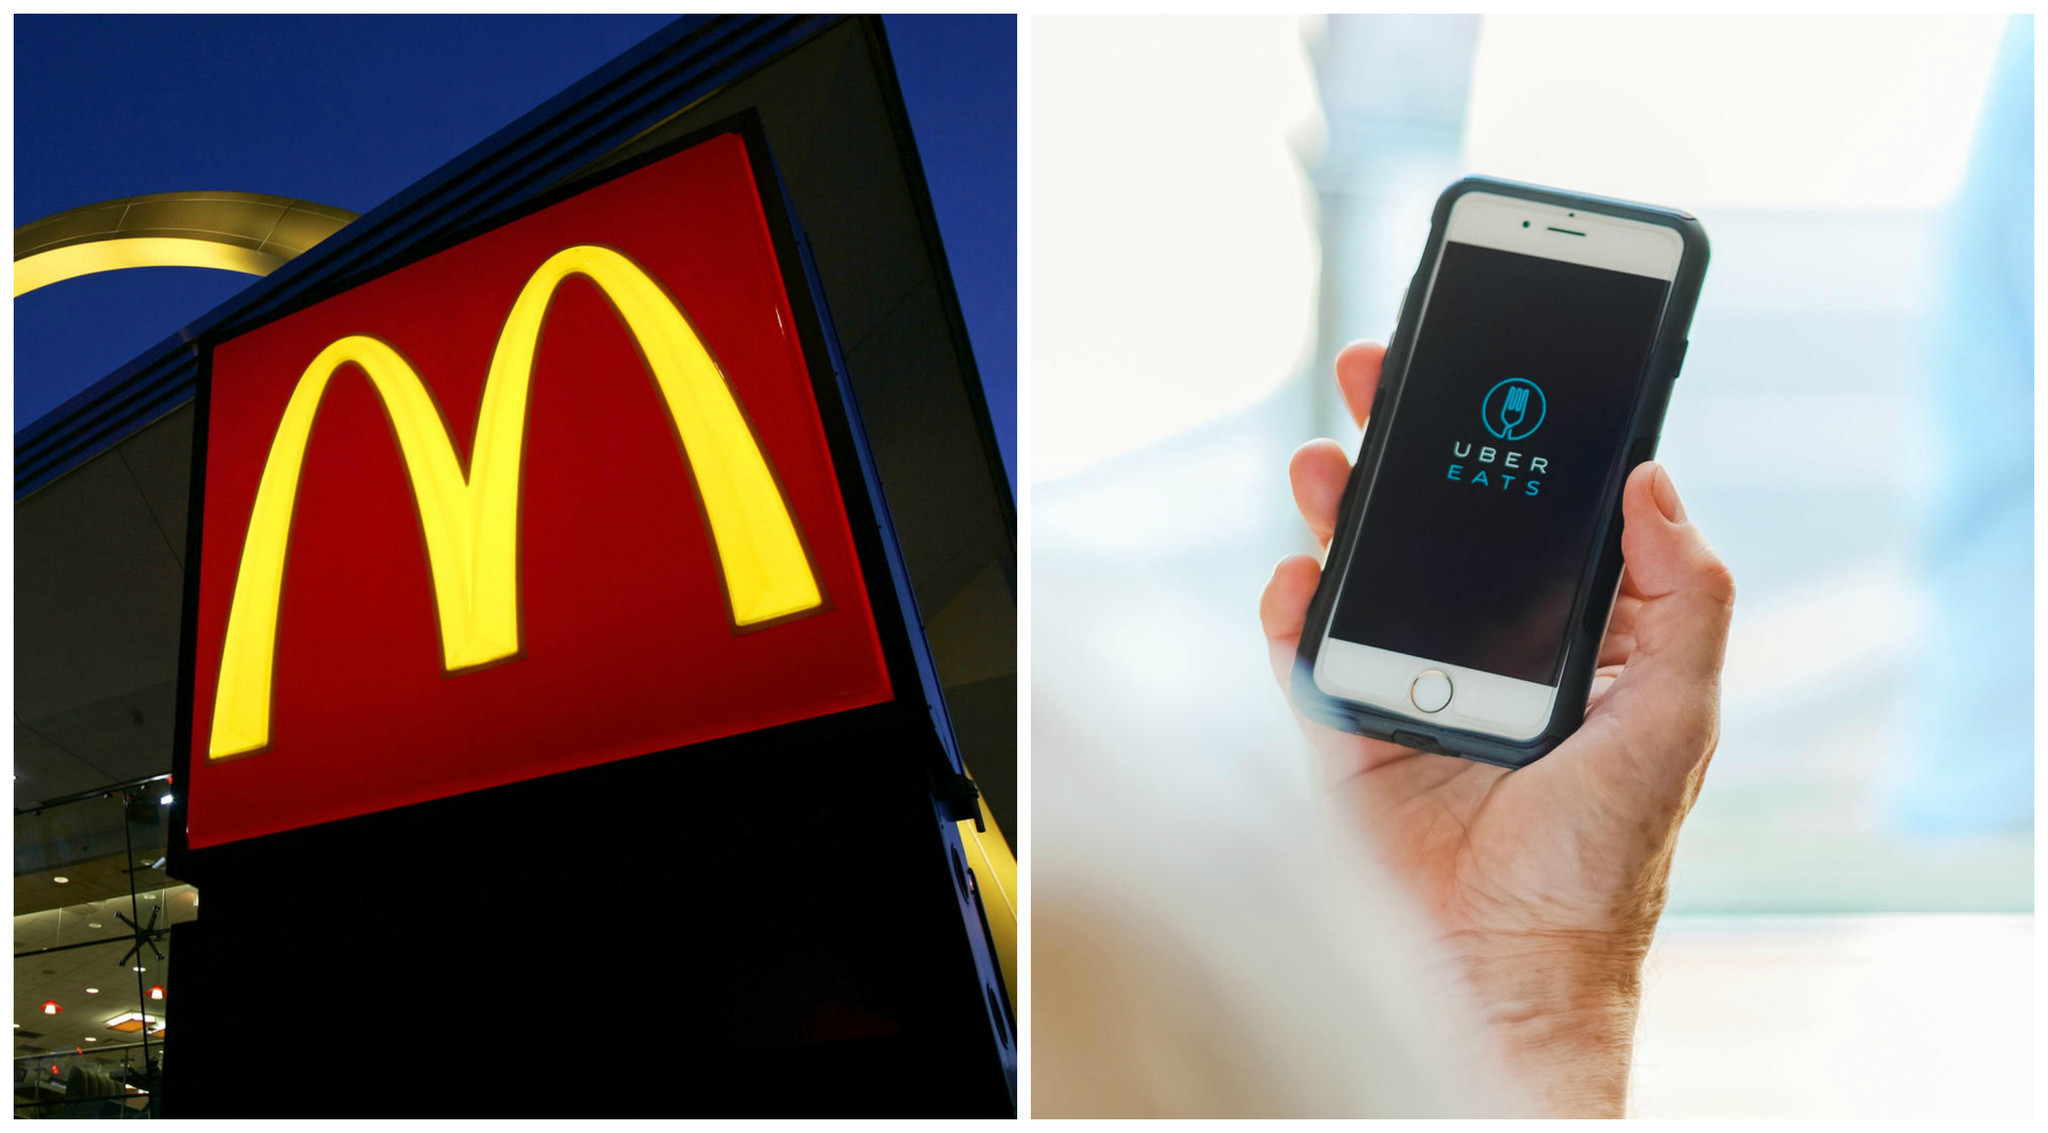 McDonalds expands McDelivery via UberEats 40piece McNuggets is popular  Chicago Tribune